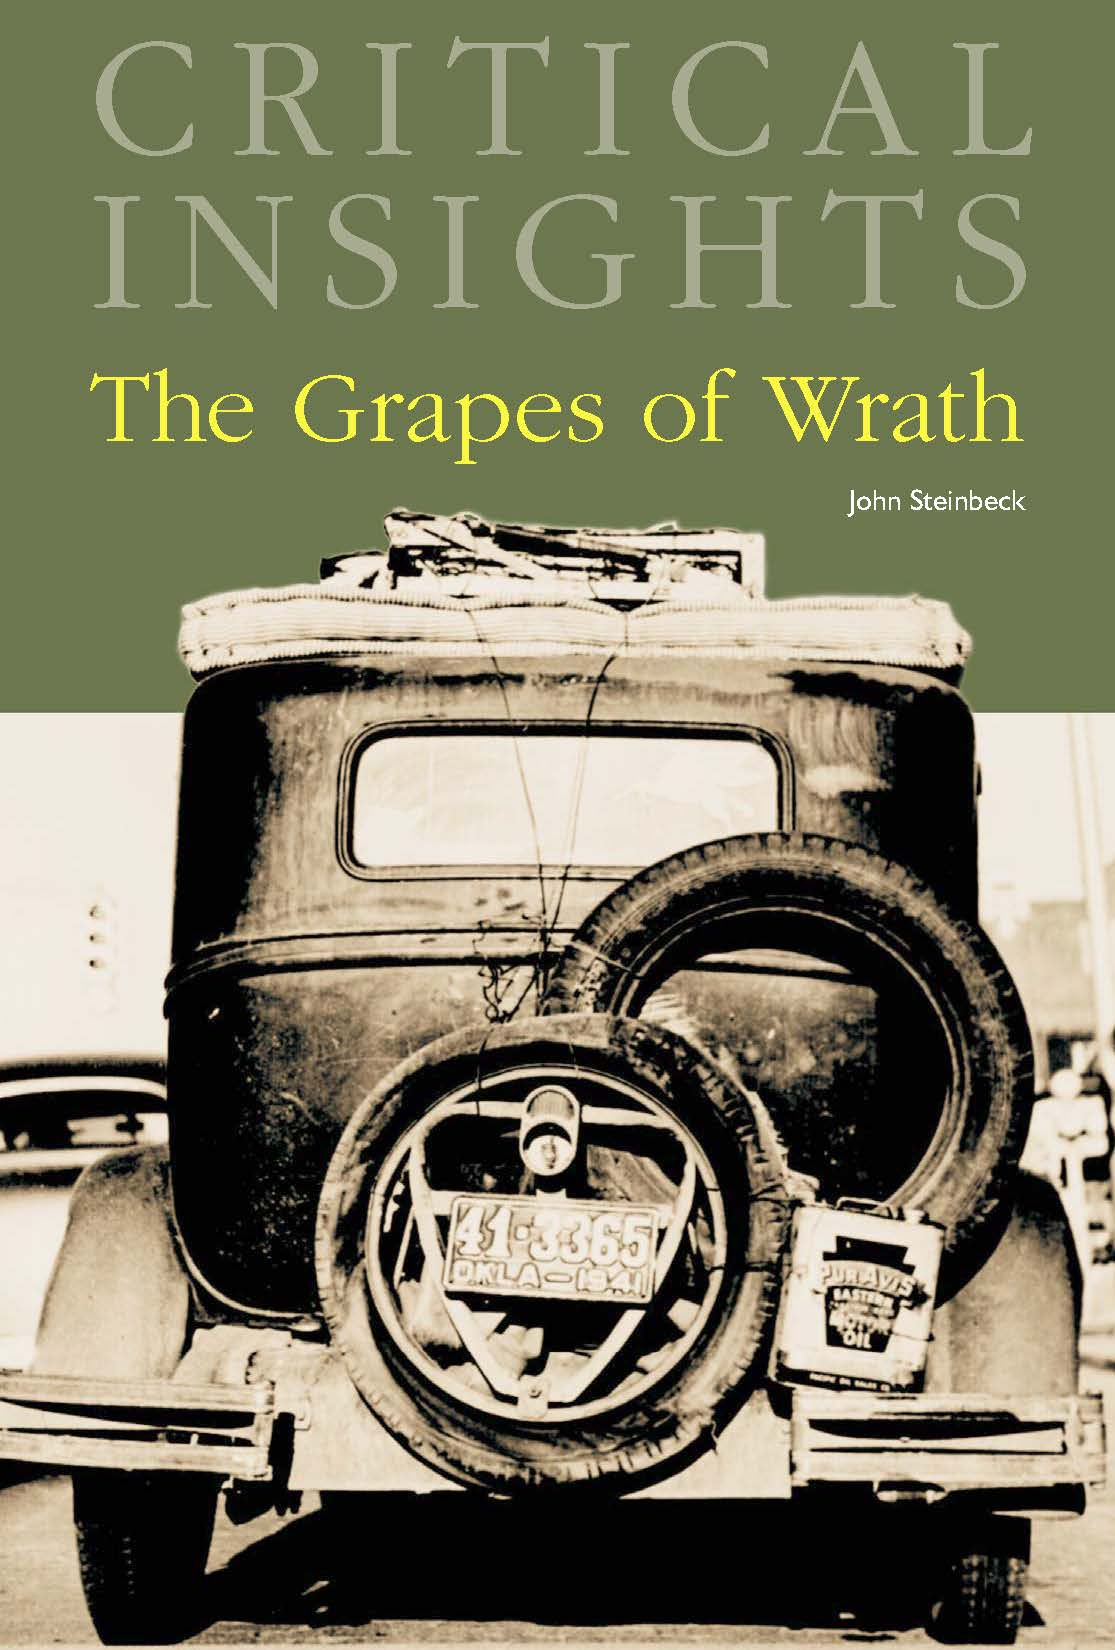 Grapes wrath the free ebook of download